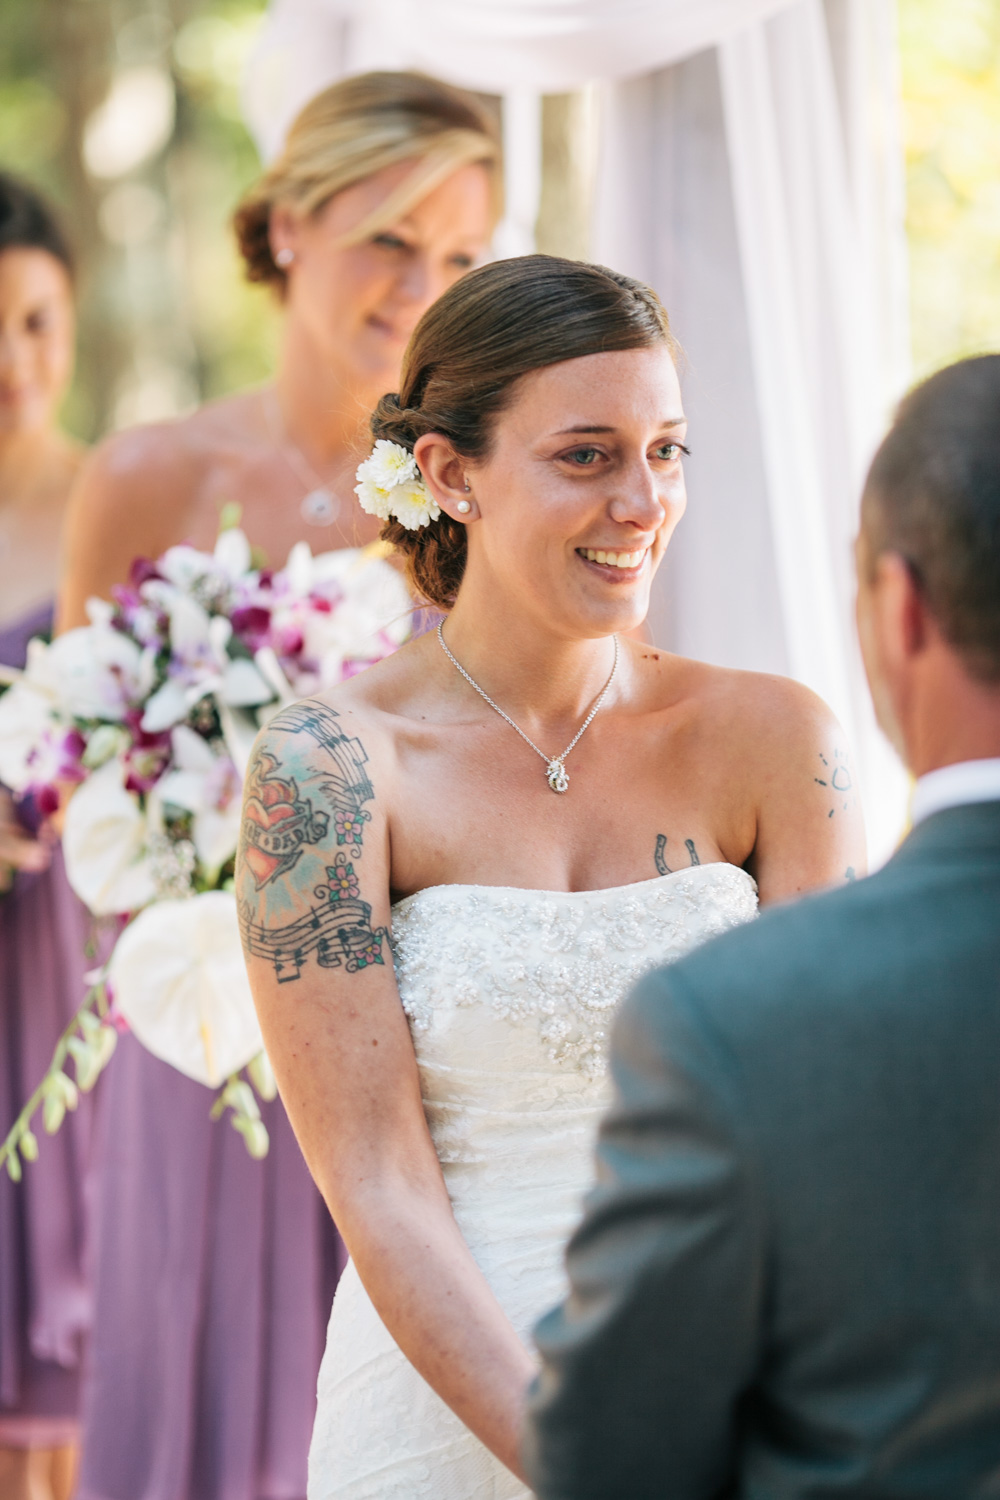 image of tattoo bride smiling at groom during wedding ceremony